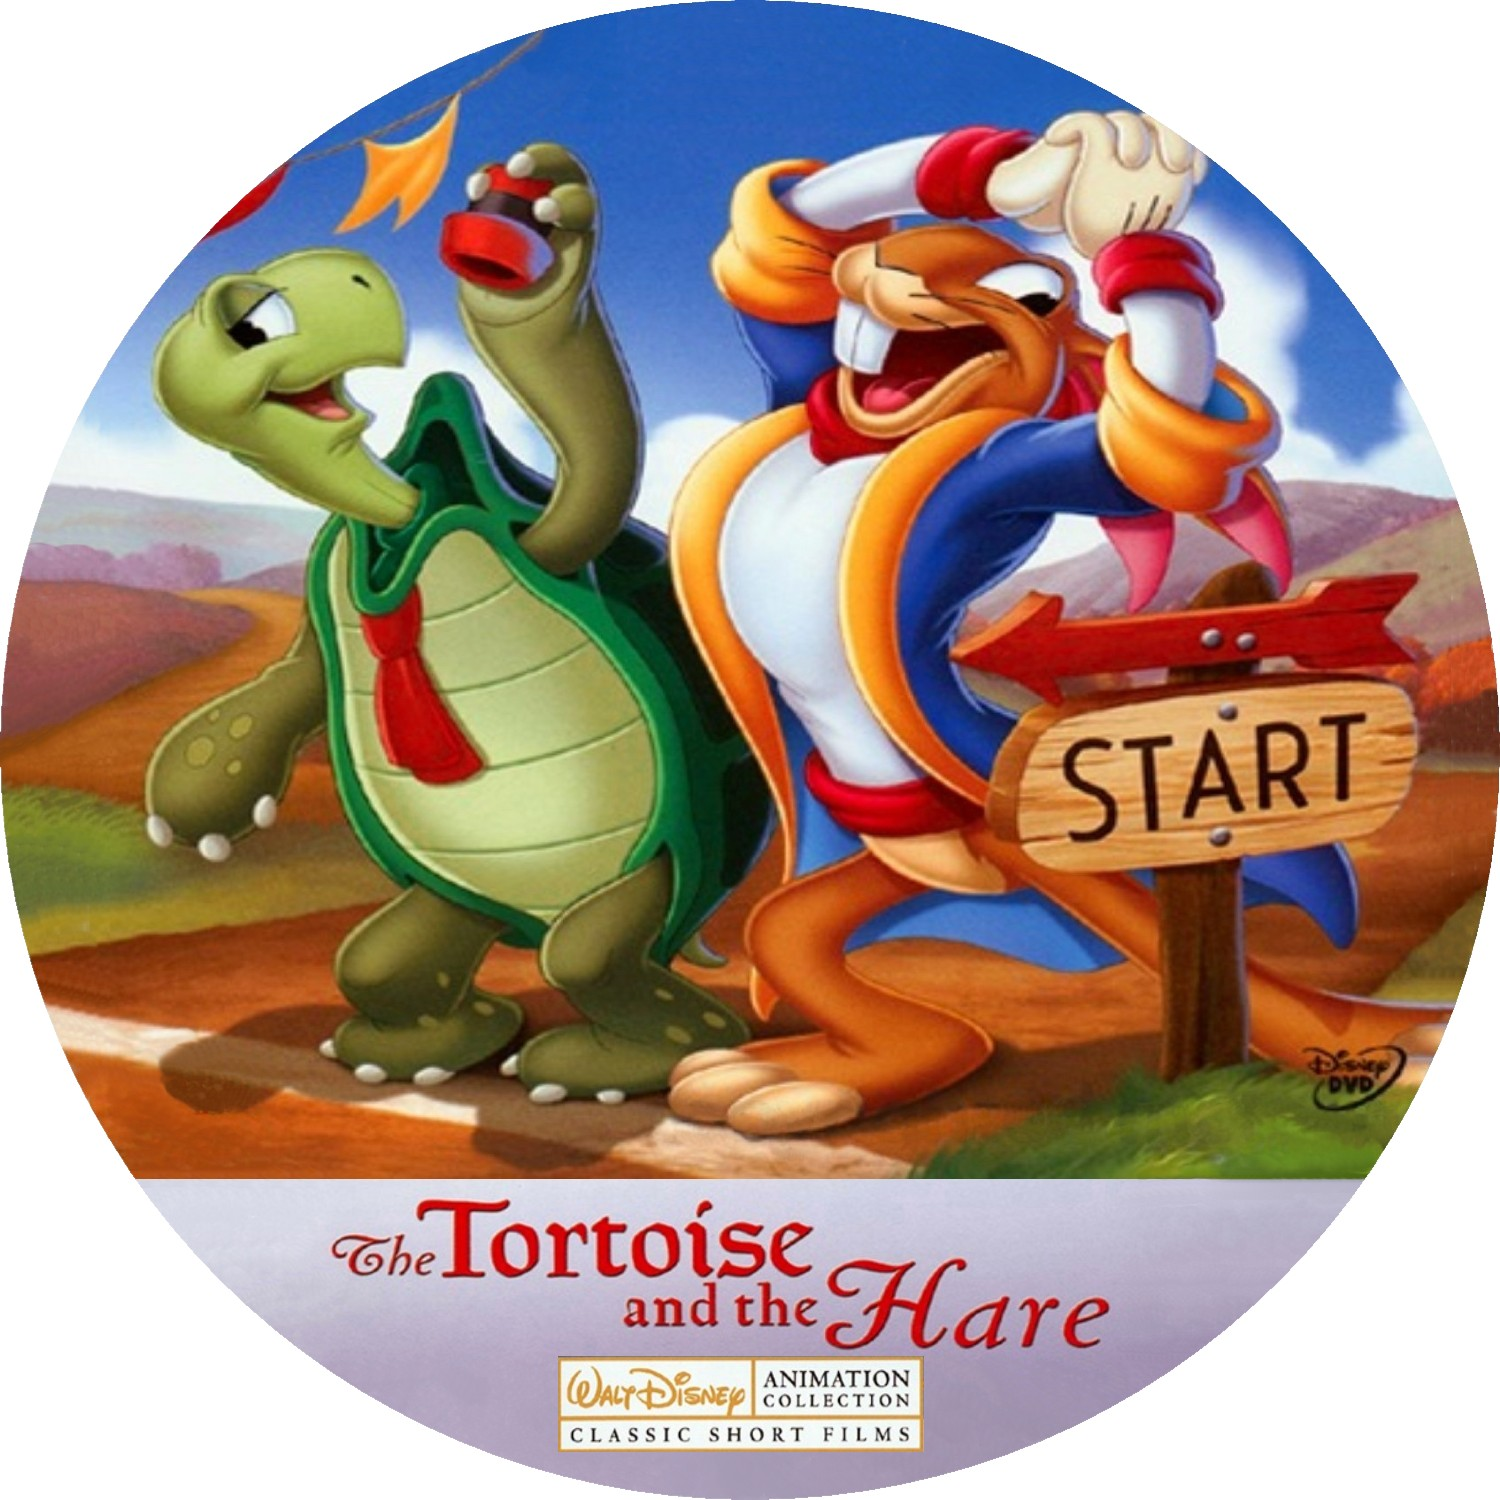 hight resolution of walt disney animation collection the tortoise and the hare 2009 ws r1 custom cd www freecovers net